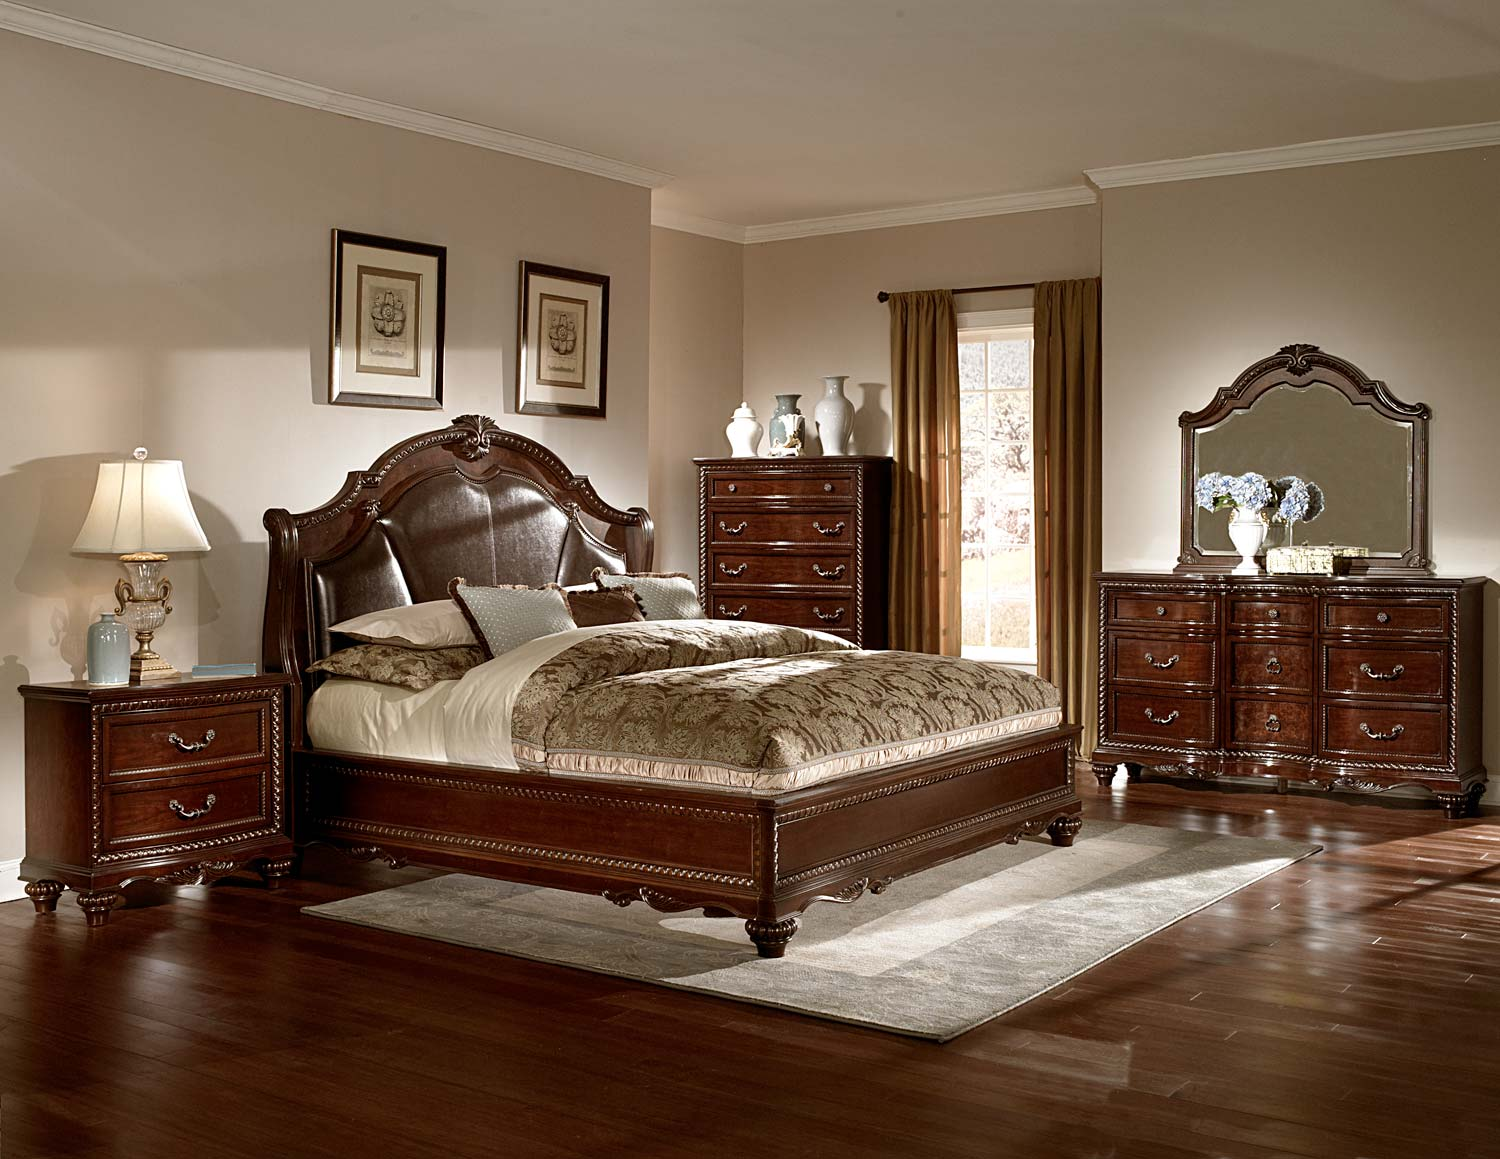 Homelegance hampstead court bedroom set cherry b2214 bed for Bed and bedroom furniture sets